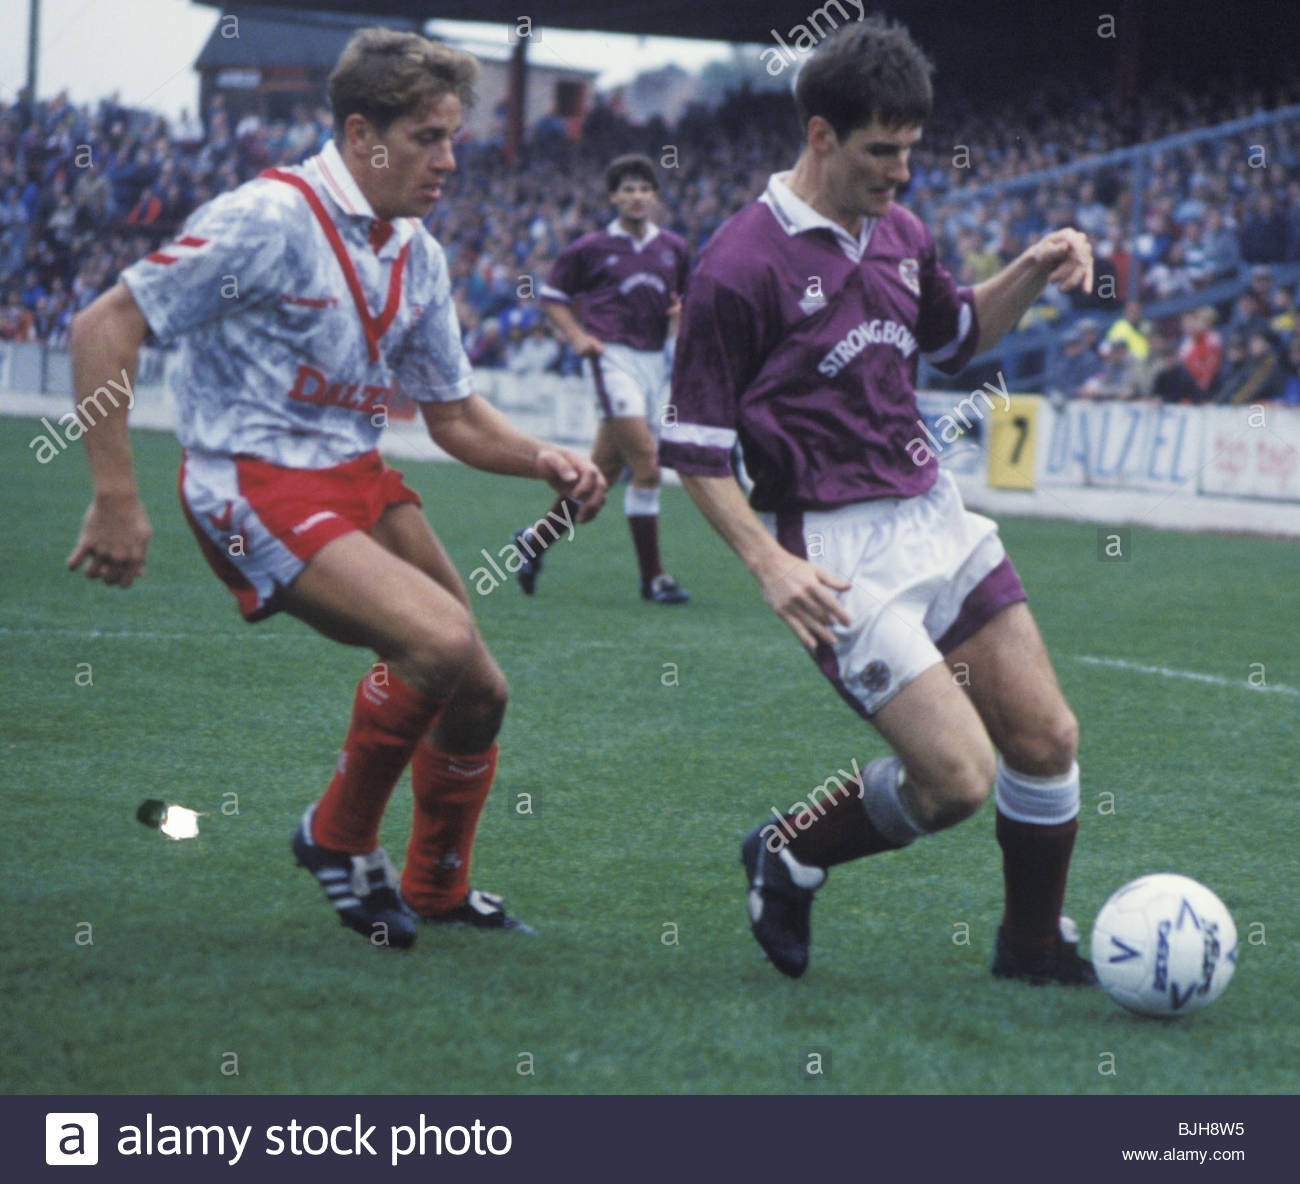 26/09/92 SCOTTISH PREMIER DIVISION AIRDRIE v HEARTS (1-0) BROOMFIELD - AIRDRIE Evan Balfour (left) challenges Hearts - Stock Image